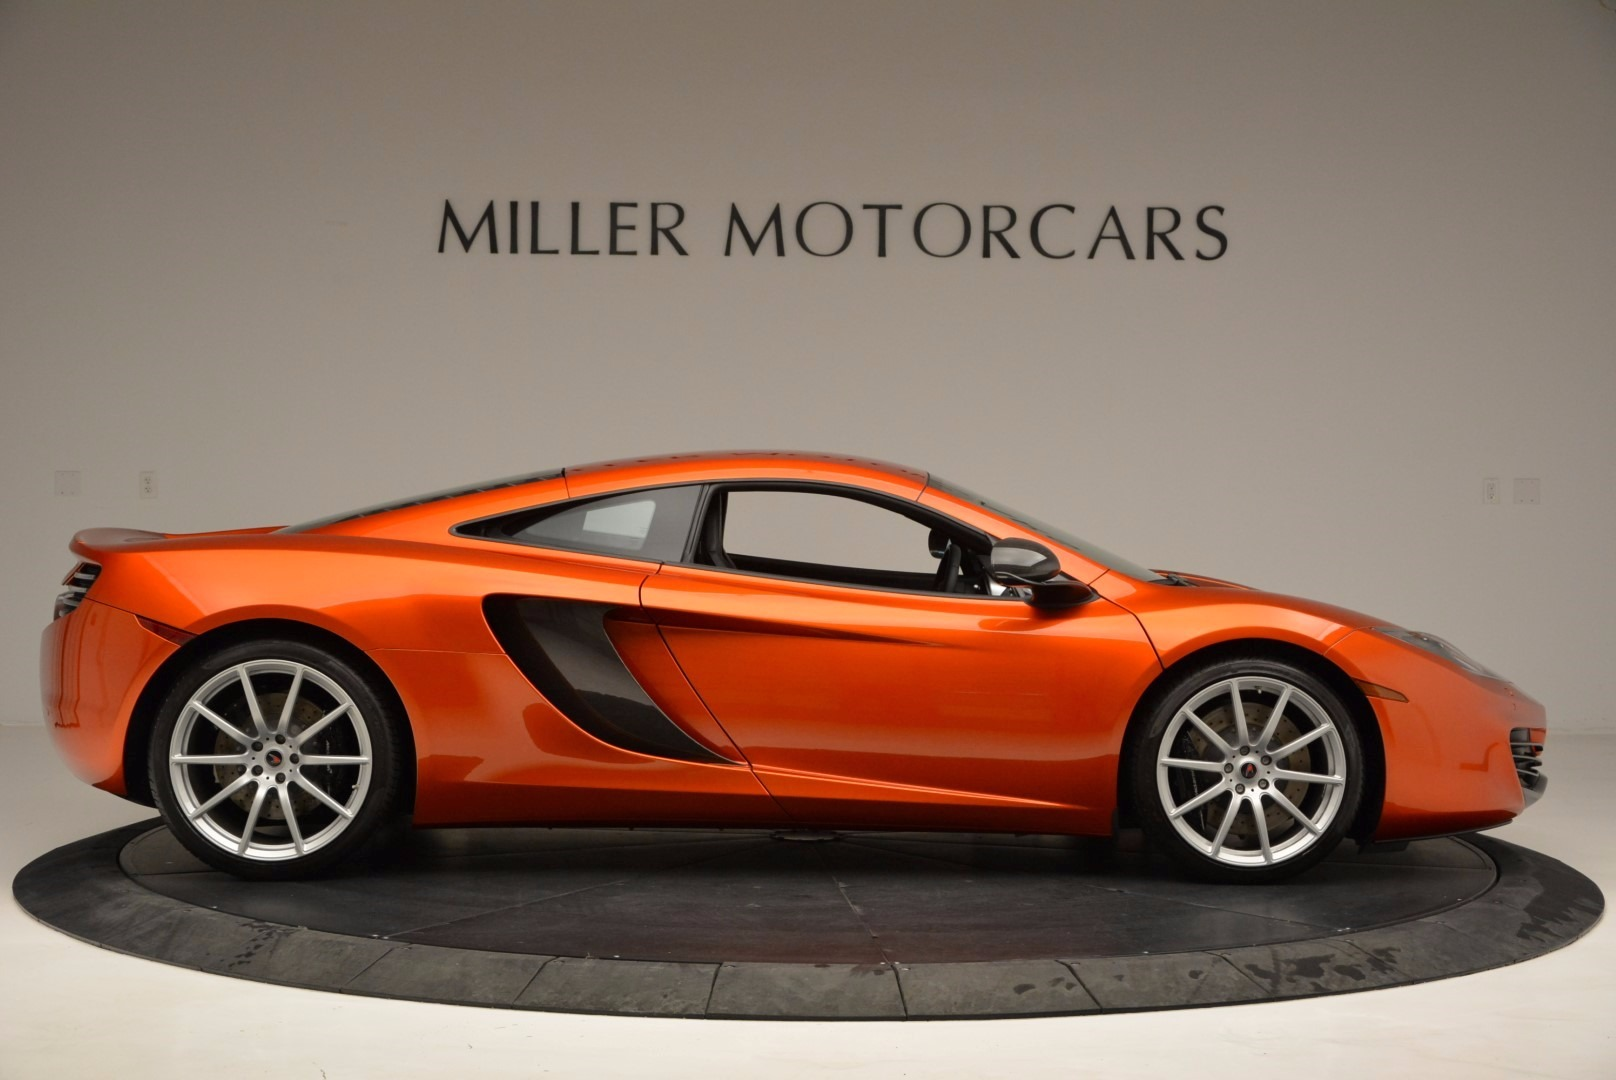 Used 2012 McLaren MP4-12C  For Sale In Greenwich, CT. Alfa Romeo of Greenwich, 3094 1035_p9